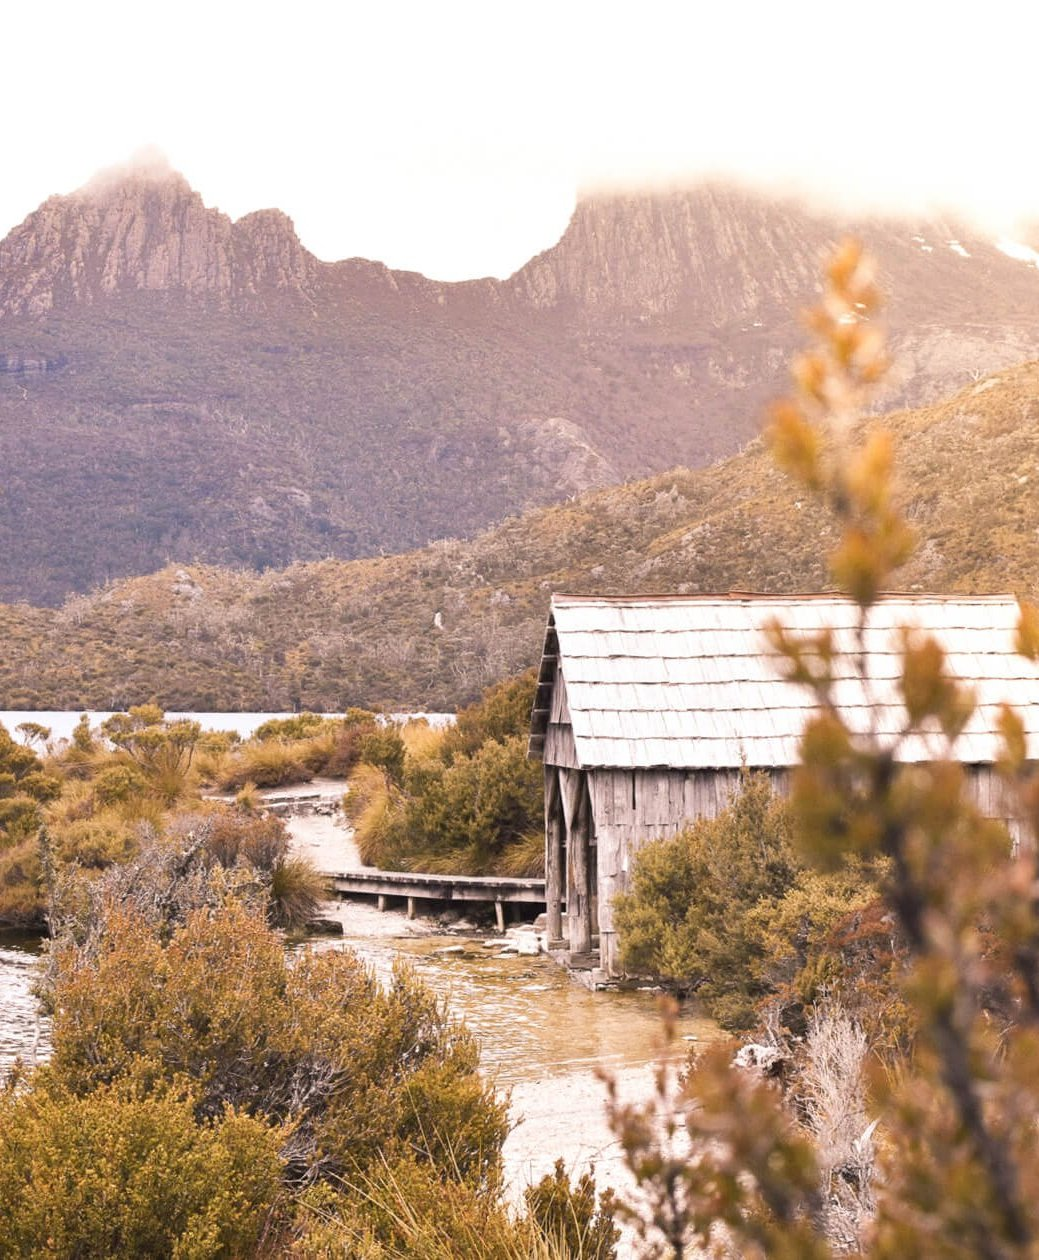 6 DAY TASMANIA ITINERARY: A NATURE LOVERS DREAM